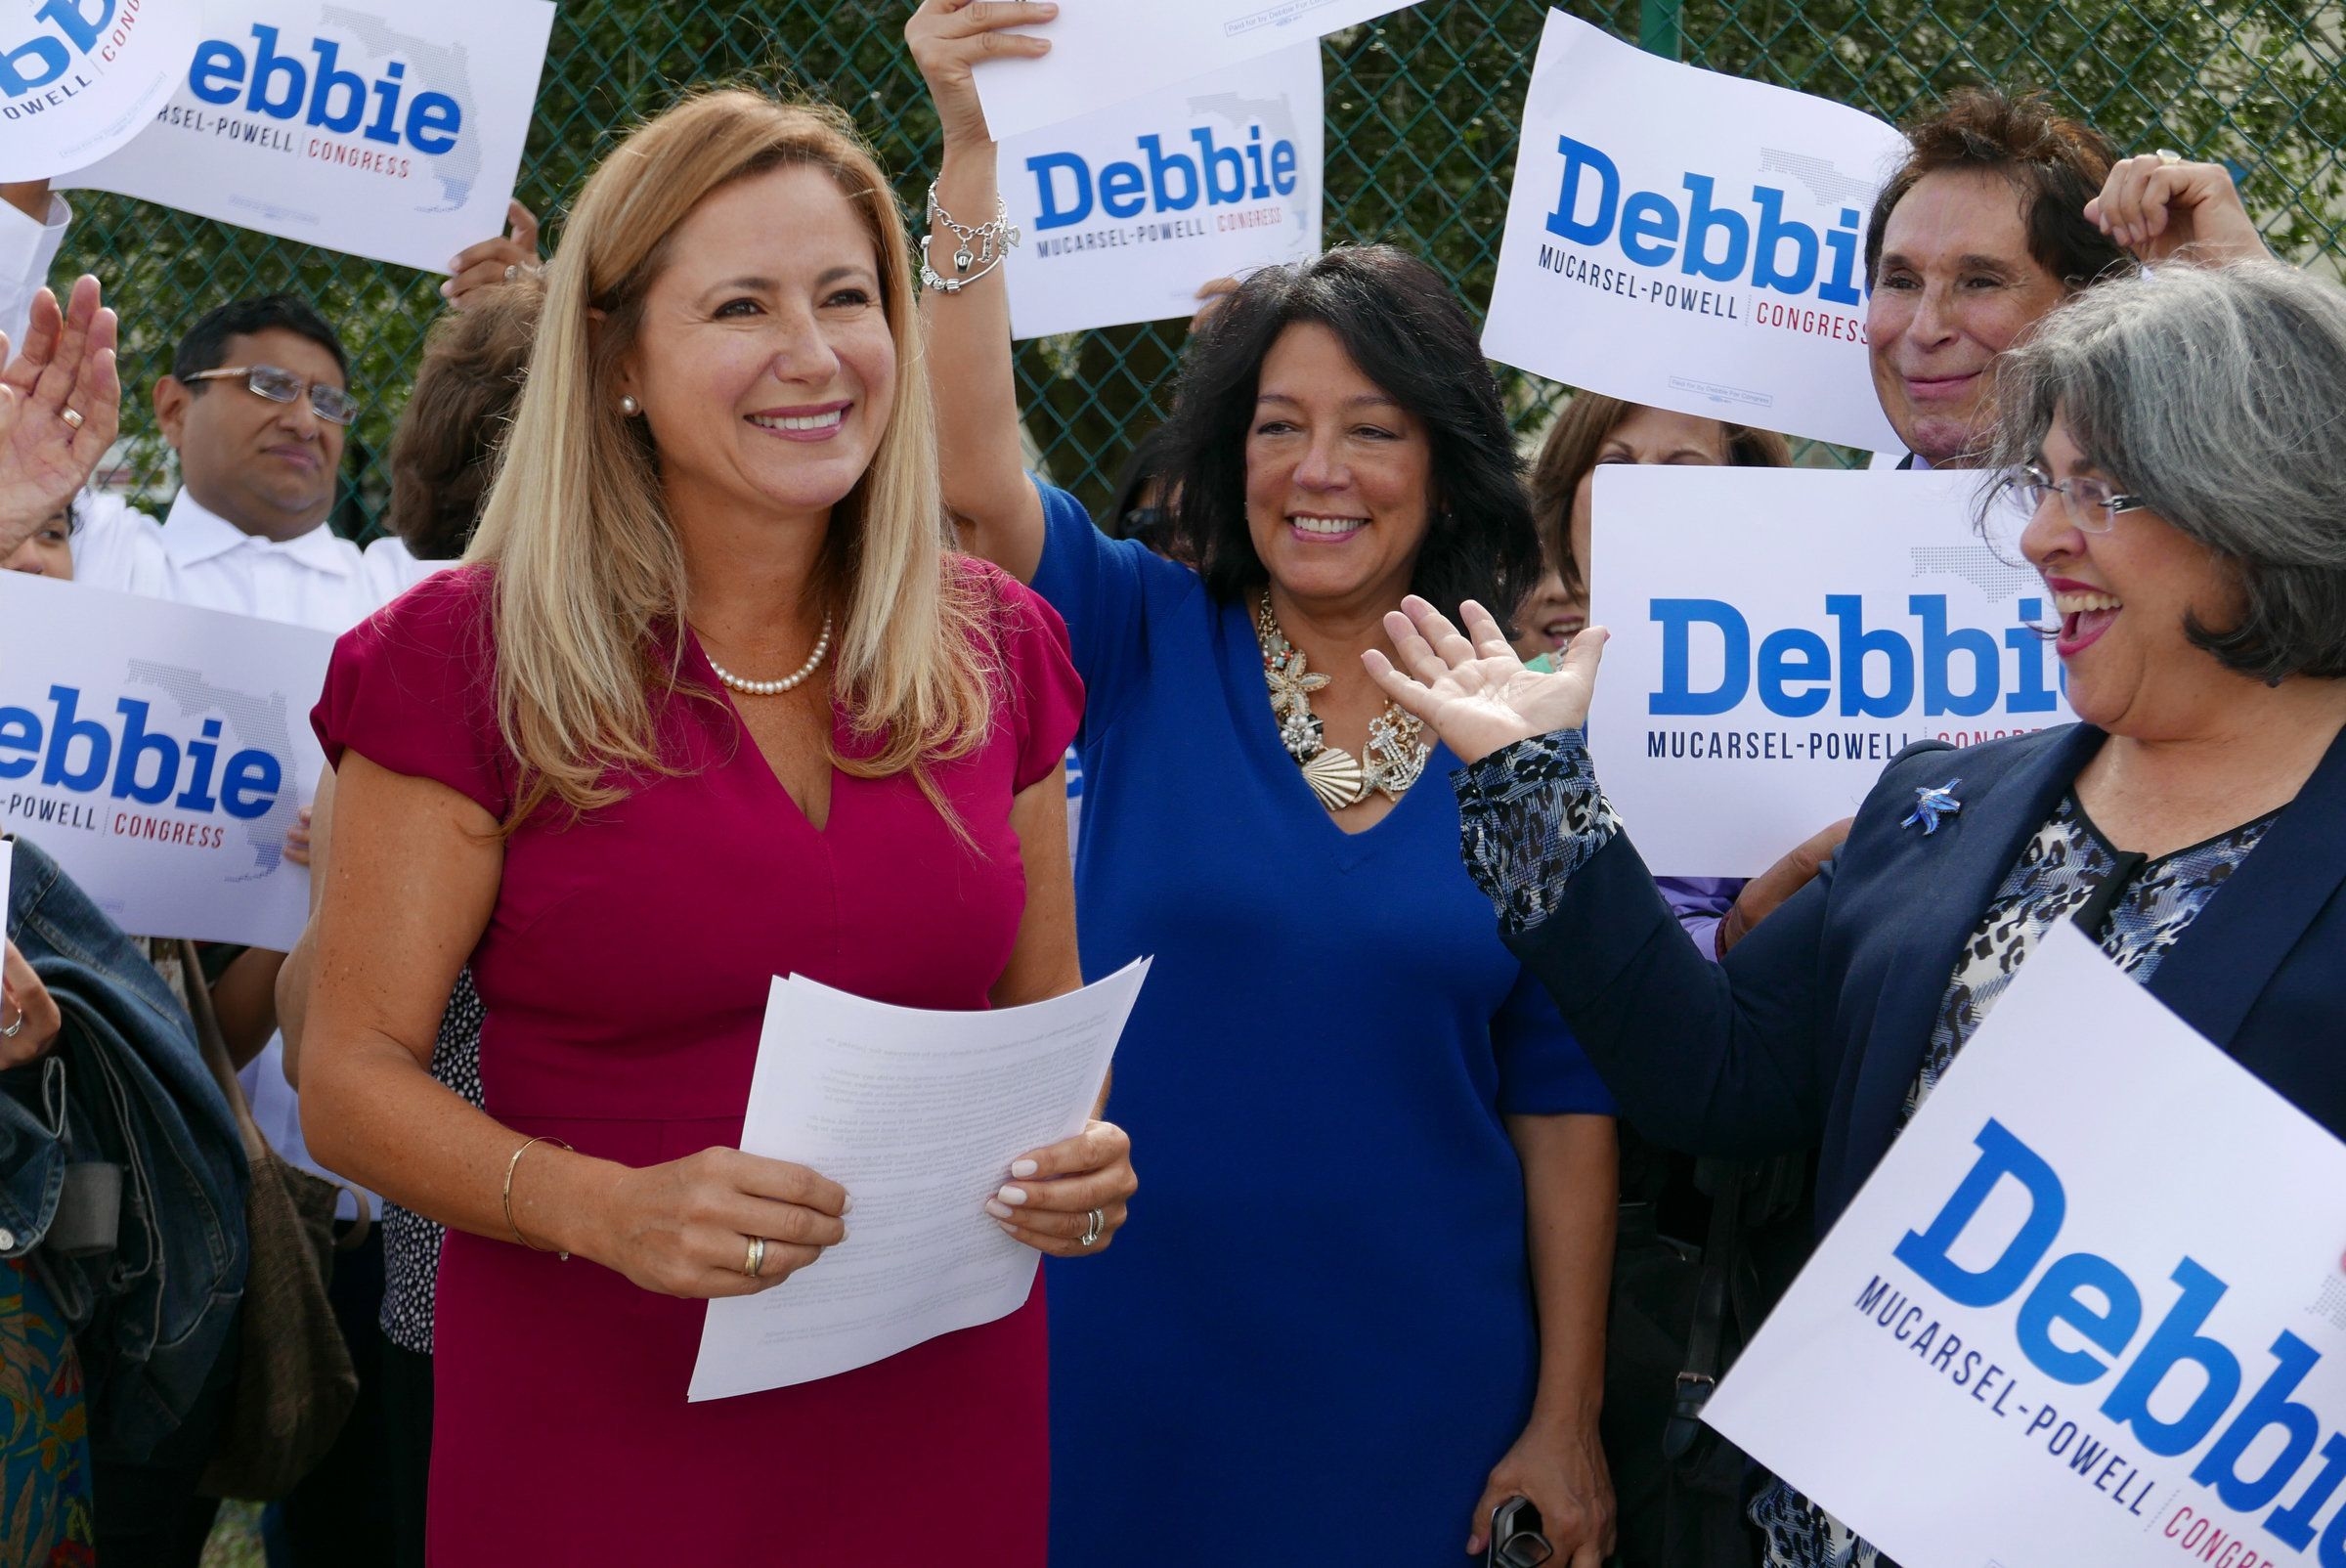 Surrounded by a small group of family and supporters, Democrat Debbie Mucarsel-Powell, left, announces she is running against Republican U.S. Rep. Carlos Curbelo, outside the West Perrine Health Center in Miami on August 2, 2017. (Jose A. Iglesias/El Nuevo Herald/TNS via Getty Images)